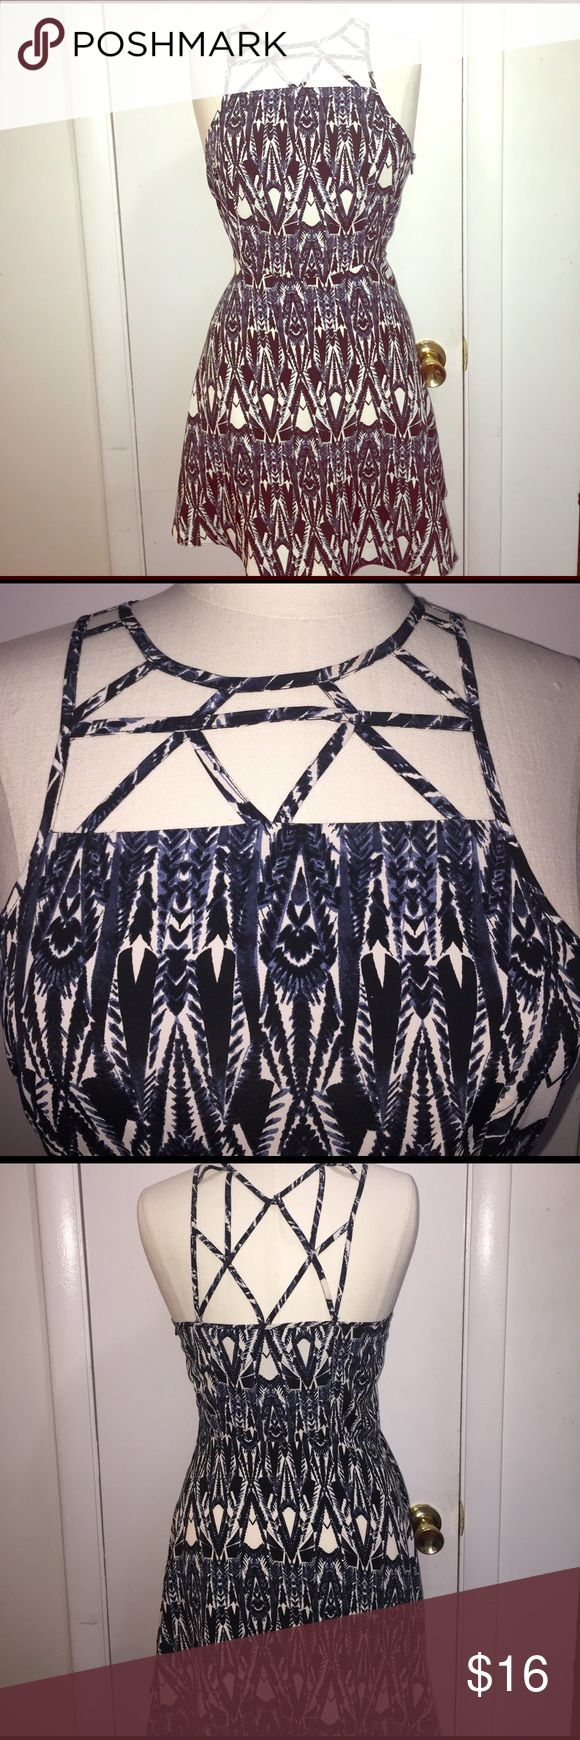 American Eagle outfitters tribal print dress Super cute American Eagle  dress with crisscross detailing in the front and back. It comes with a side zipper for easy access. American Eagle Outfitters Dresses Mini